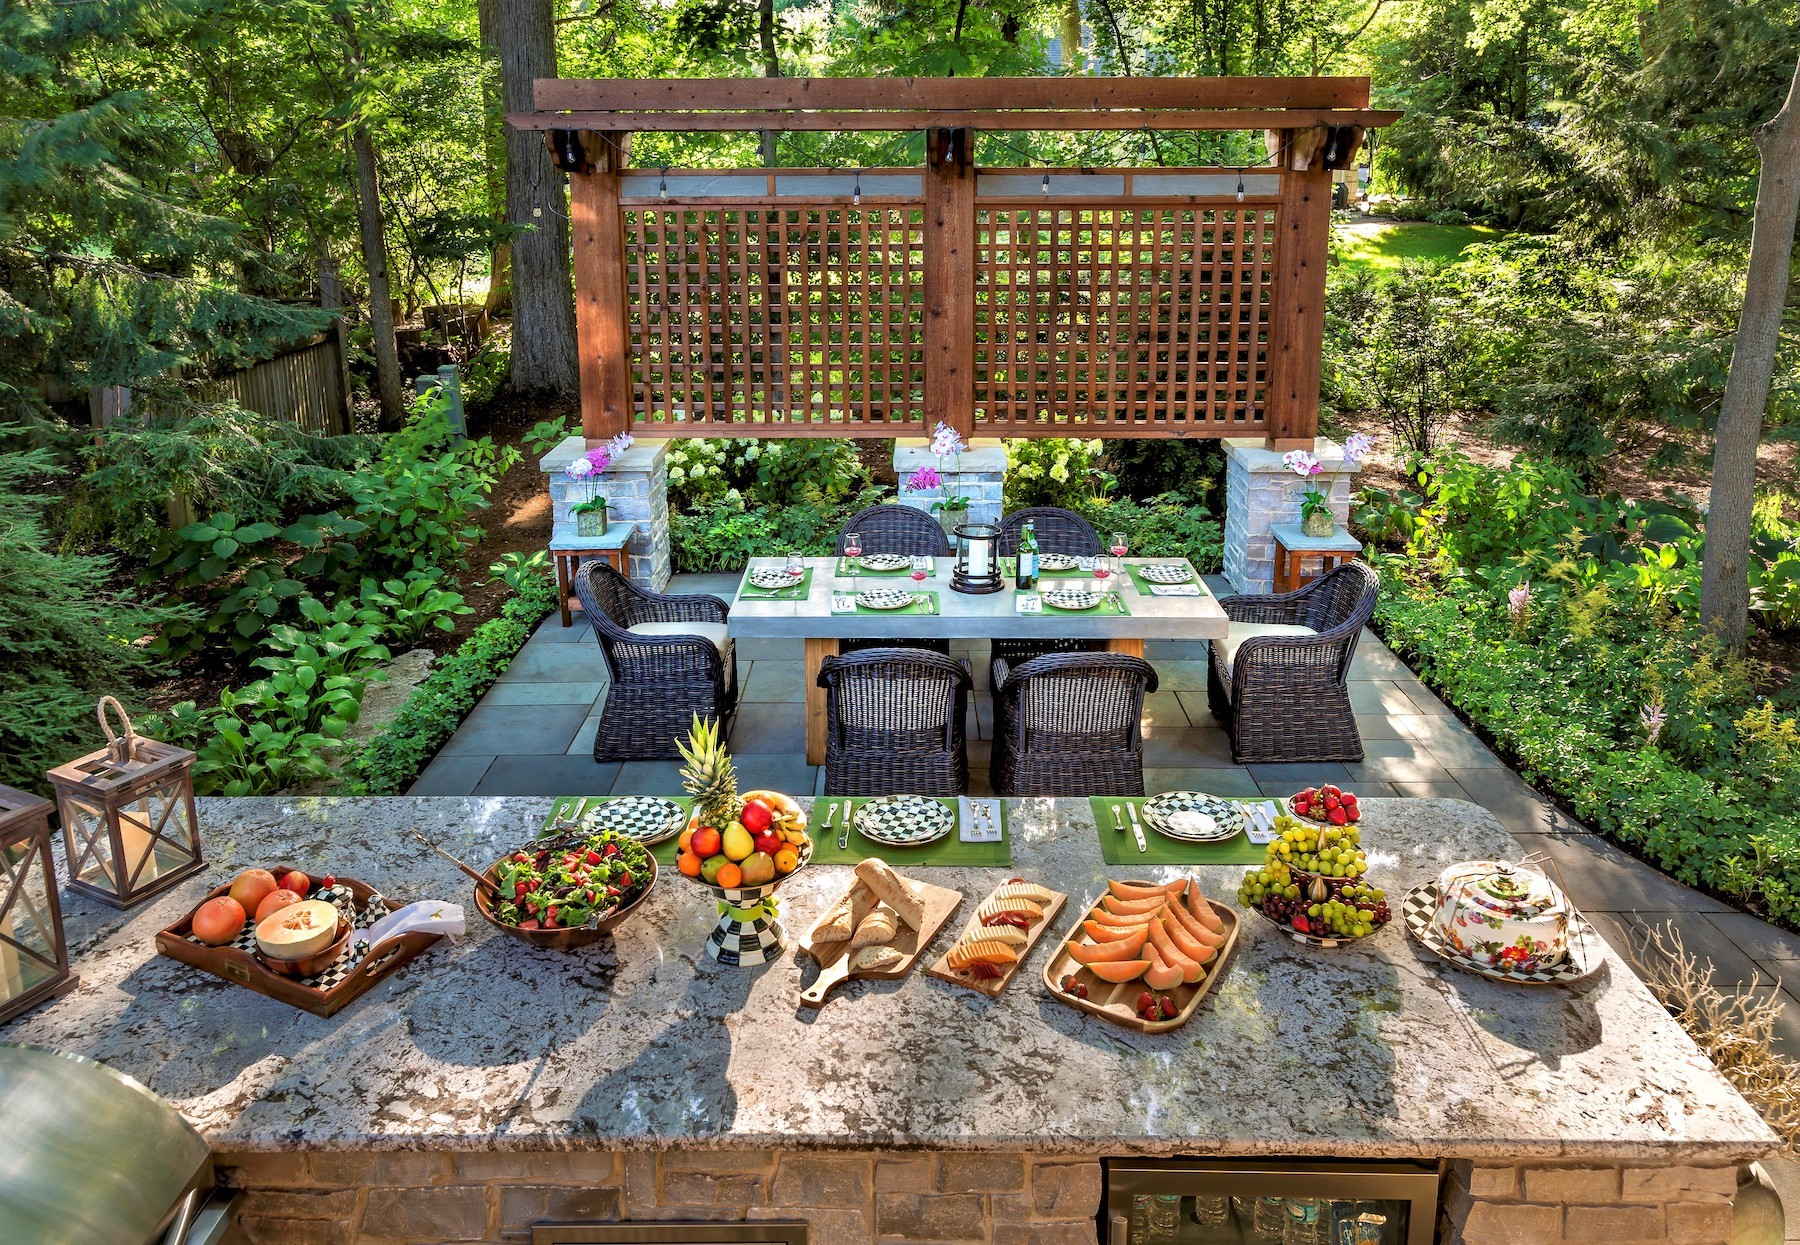 How Do I Landscape My Backyard For Privacy? 7 Privacy Landscaping Ideas